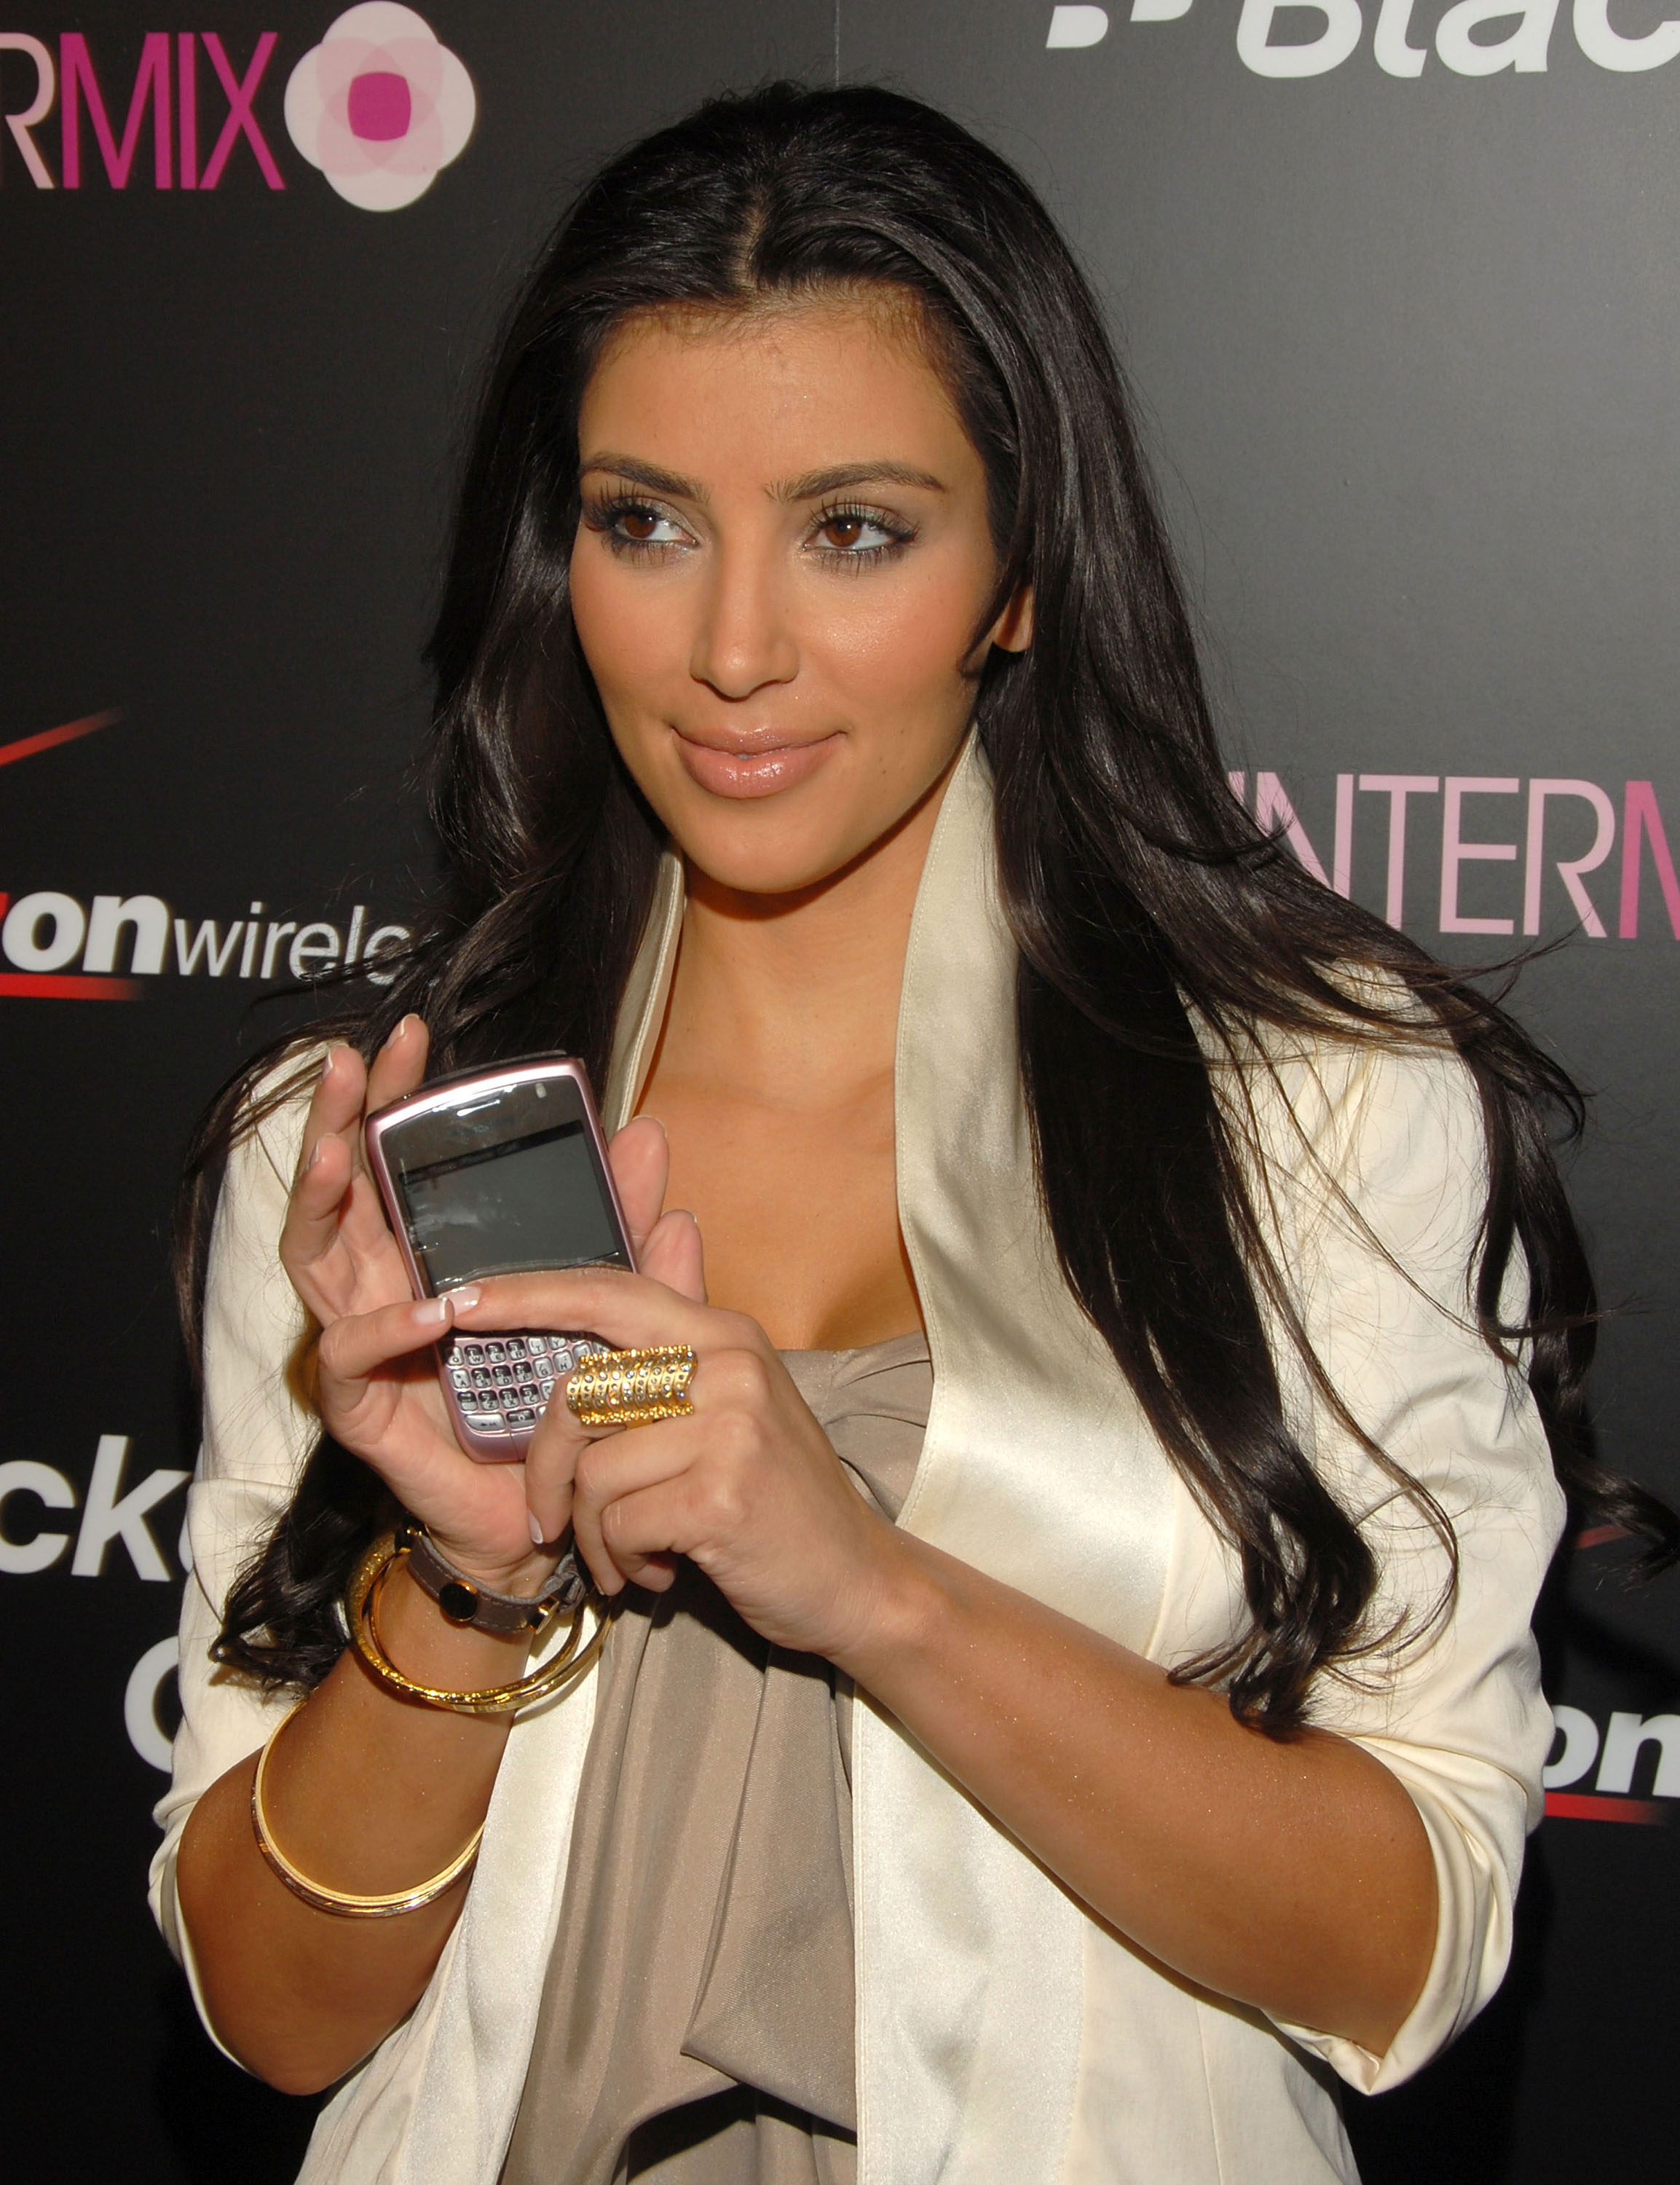 Television personality Kim Kardashian arrives at Verizon Wireless' exclusive launch party for the Blackberry 8330 Pink Curve in 2008